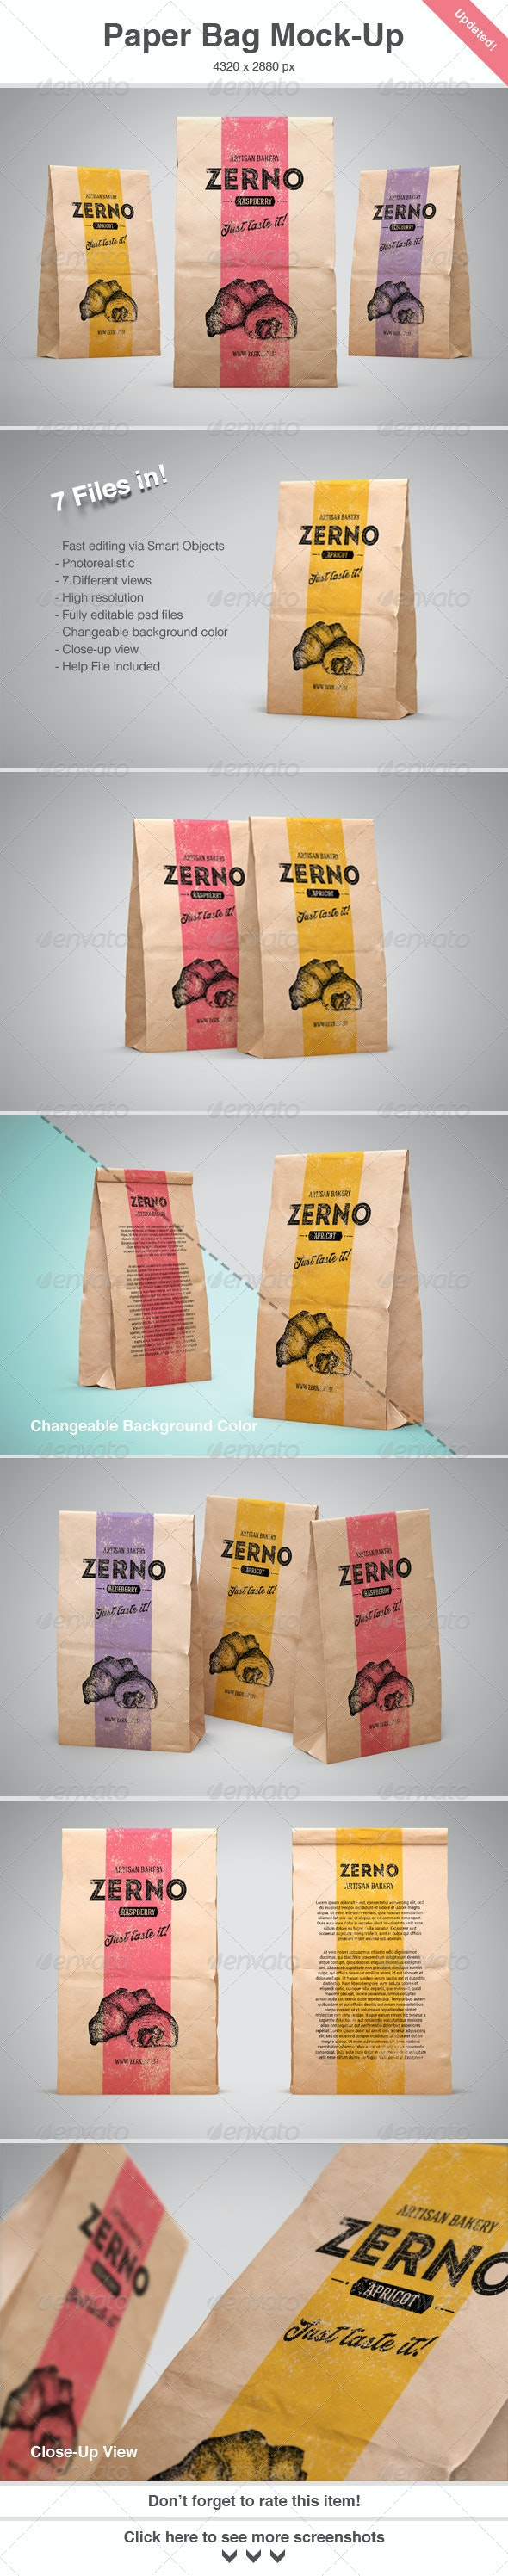 Paper Bag Mock-Up - Food and Drink Packaging